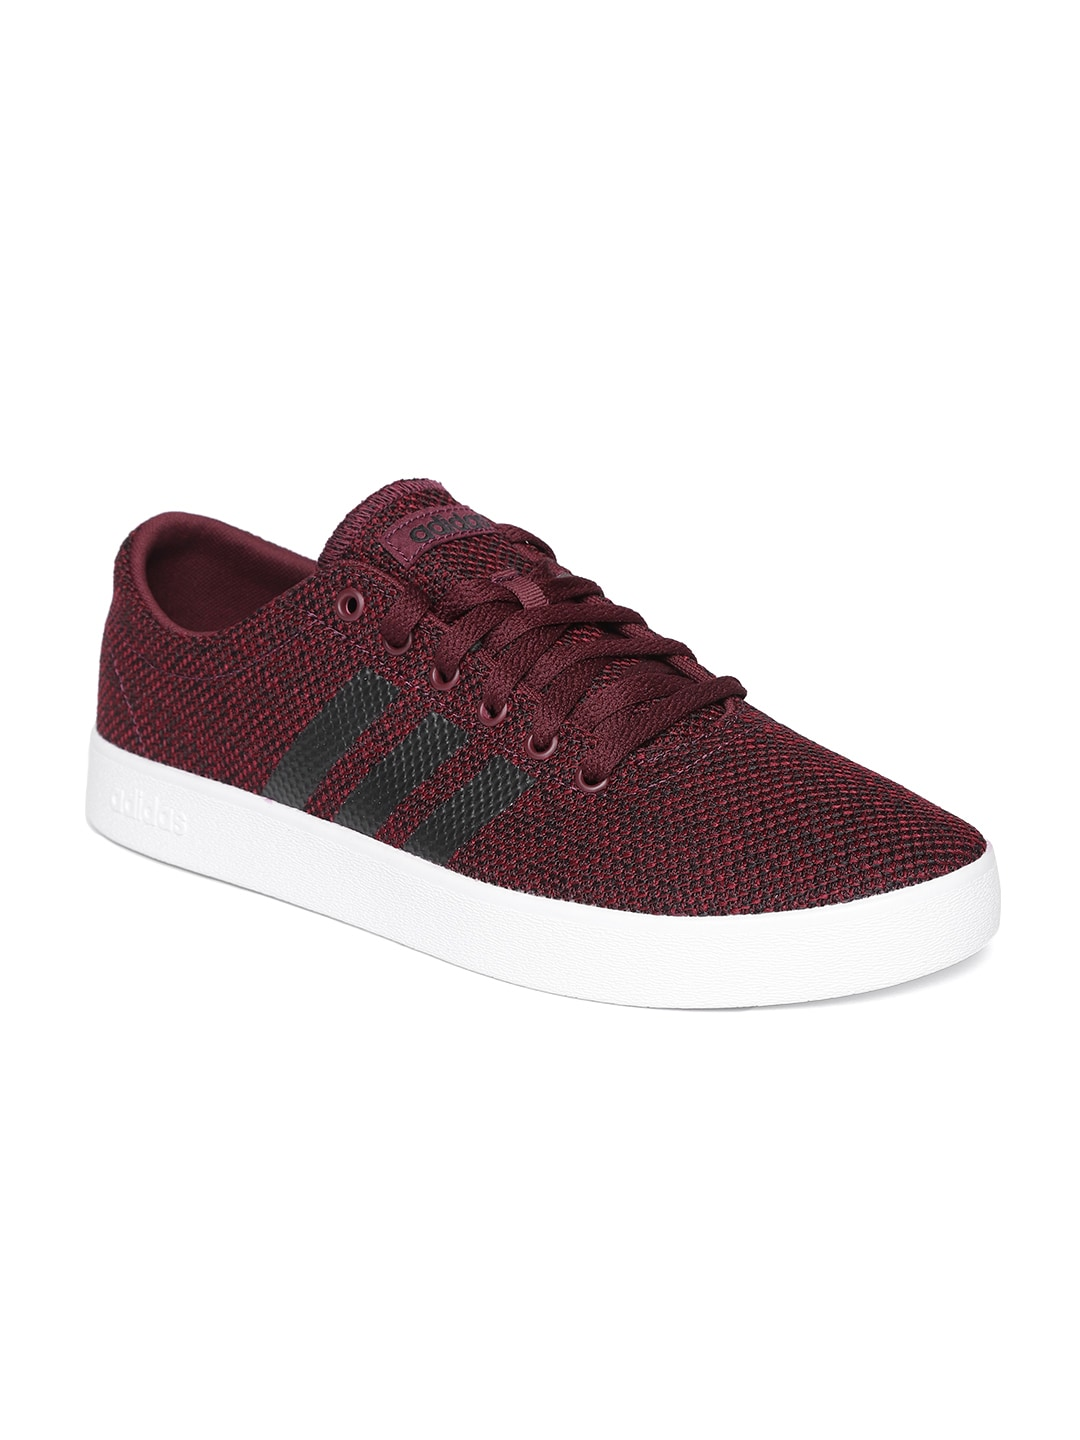 Men s Adidas Originals Shoes - Buy Adidas Originals Shoes for Men Online in  India 0bb04c1832f